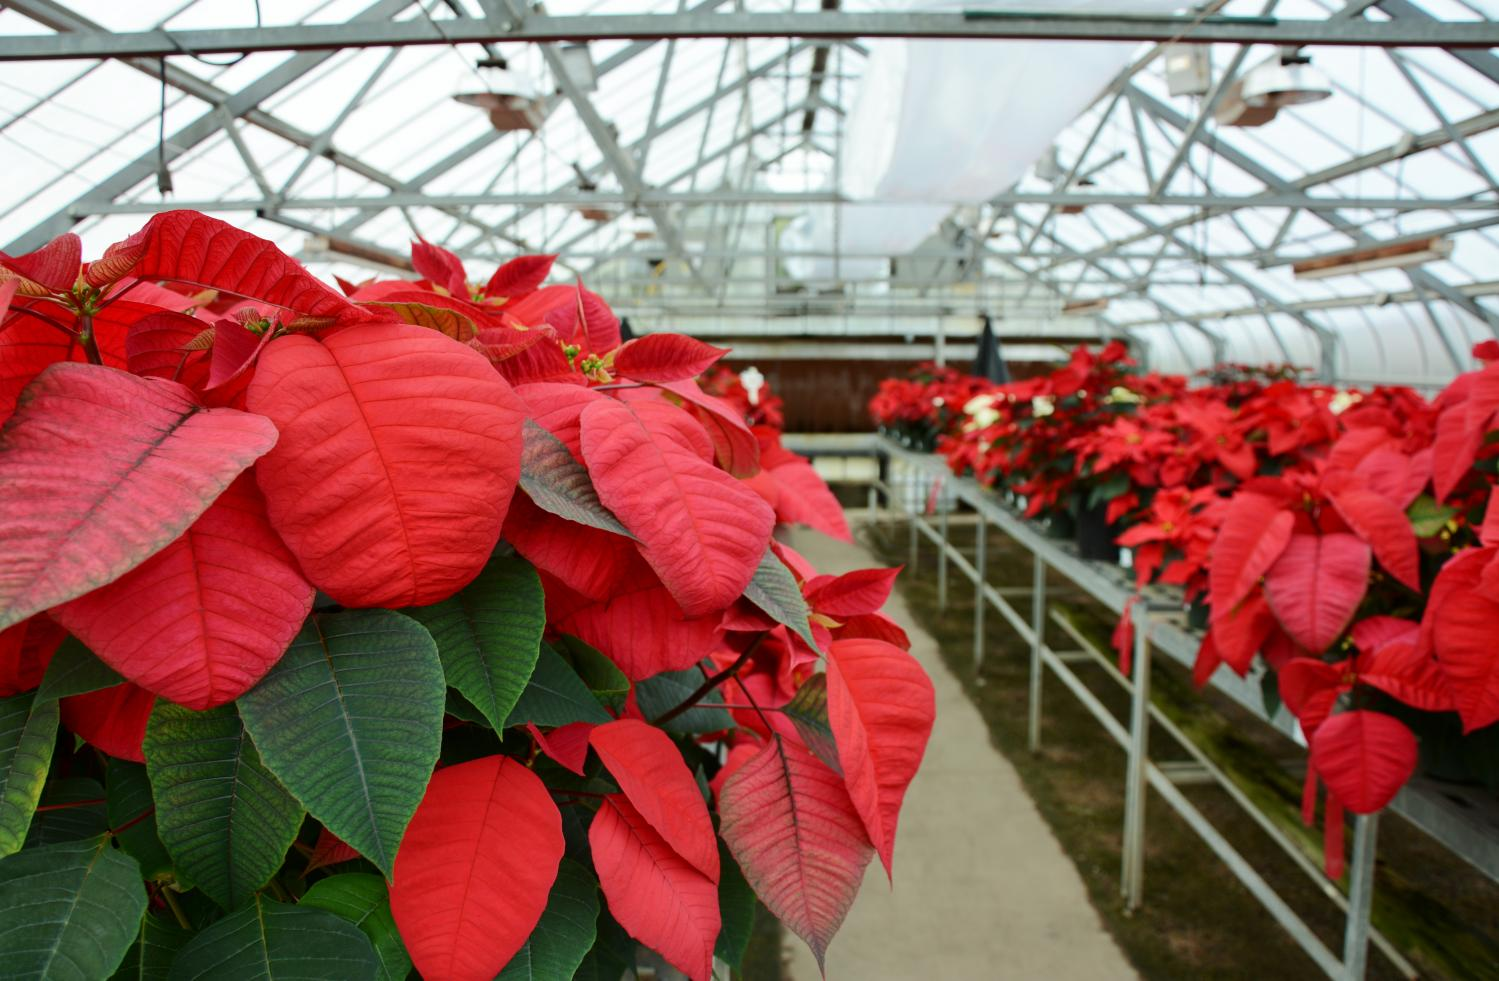 poinsettia trial shows effect of high temperatures on plant growth